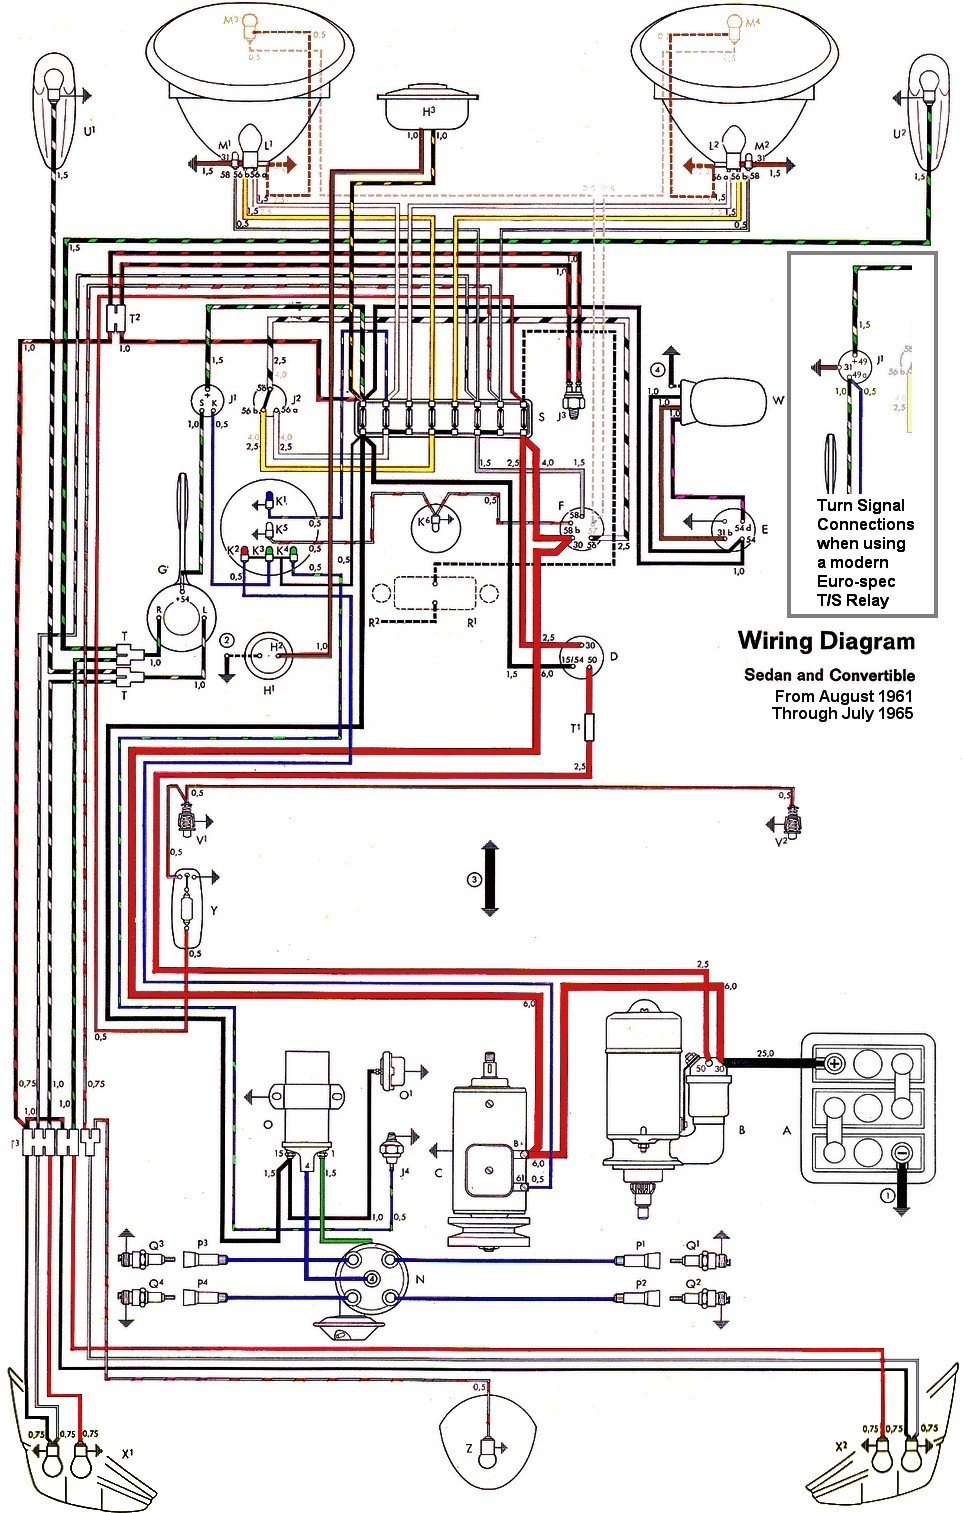 bug_62 65withinset vw wiring harness diagram cj7 wiring harness diagram \u2022 wiring Volkswagen Type 2 Wiring Harness at mifinder.co